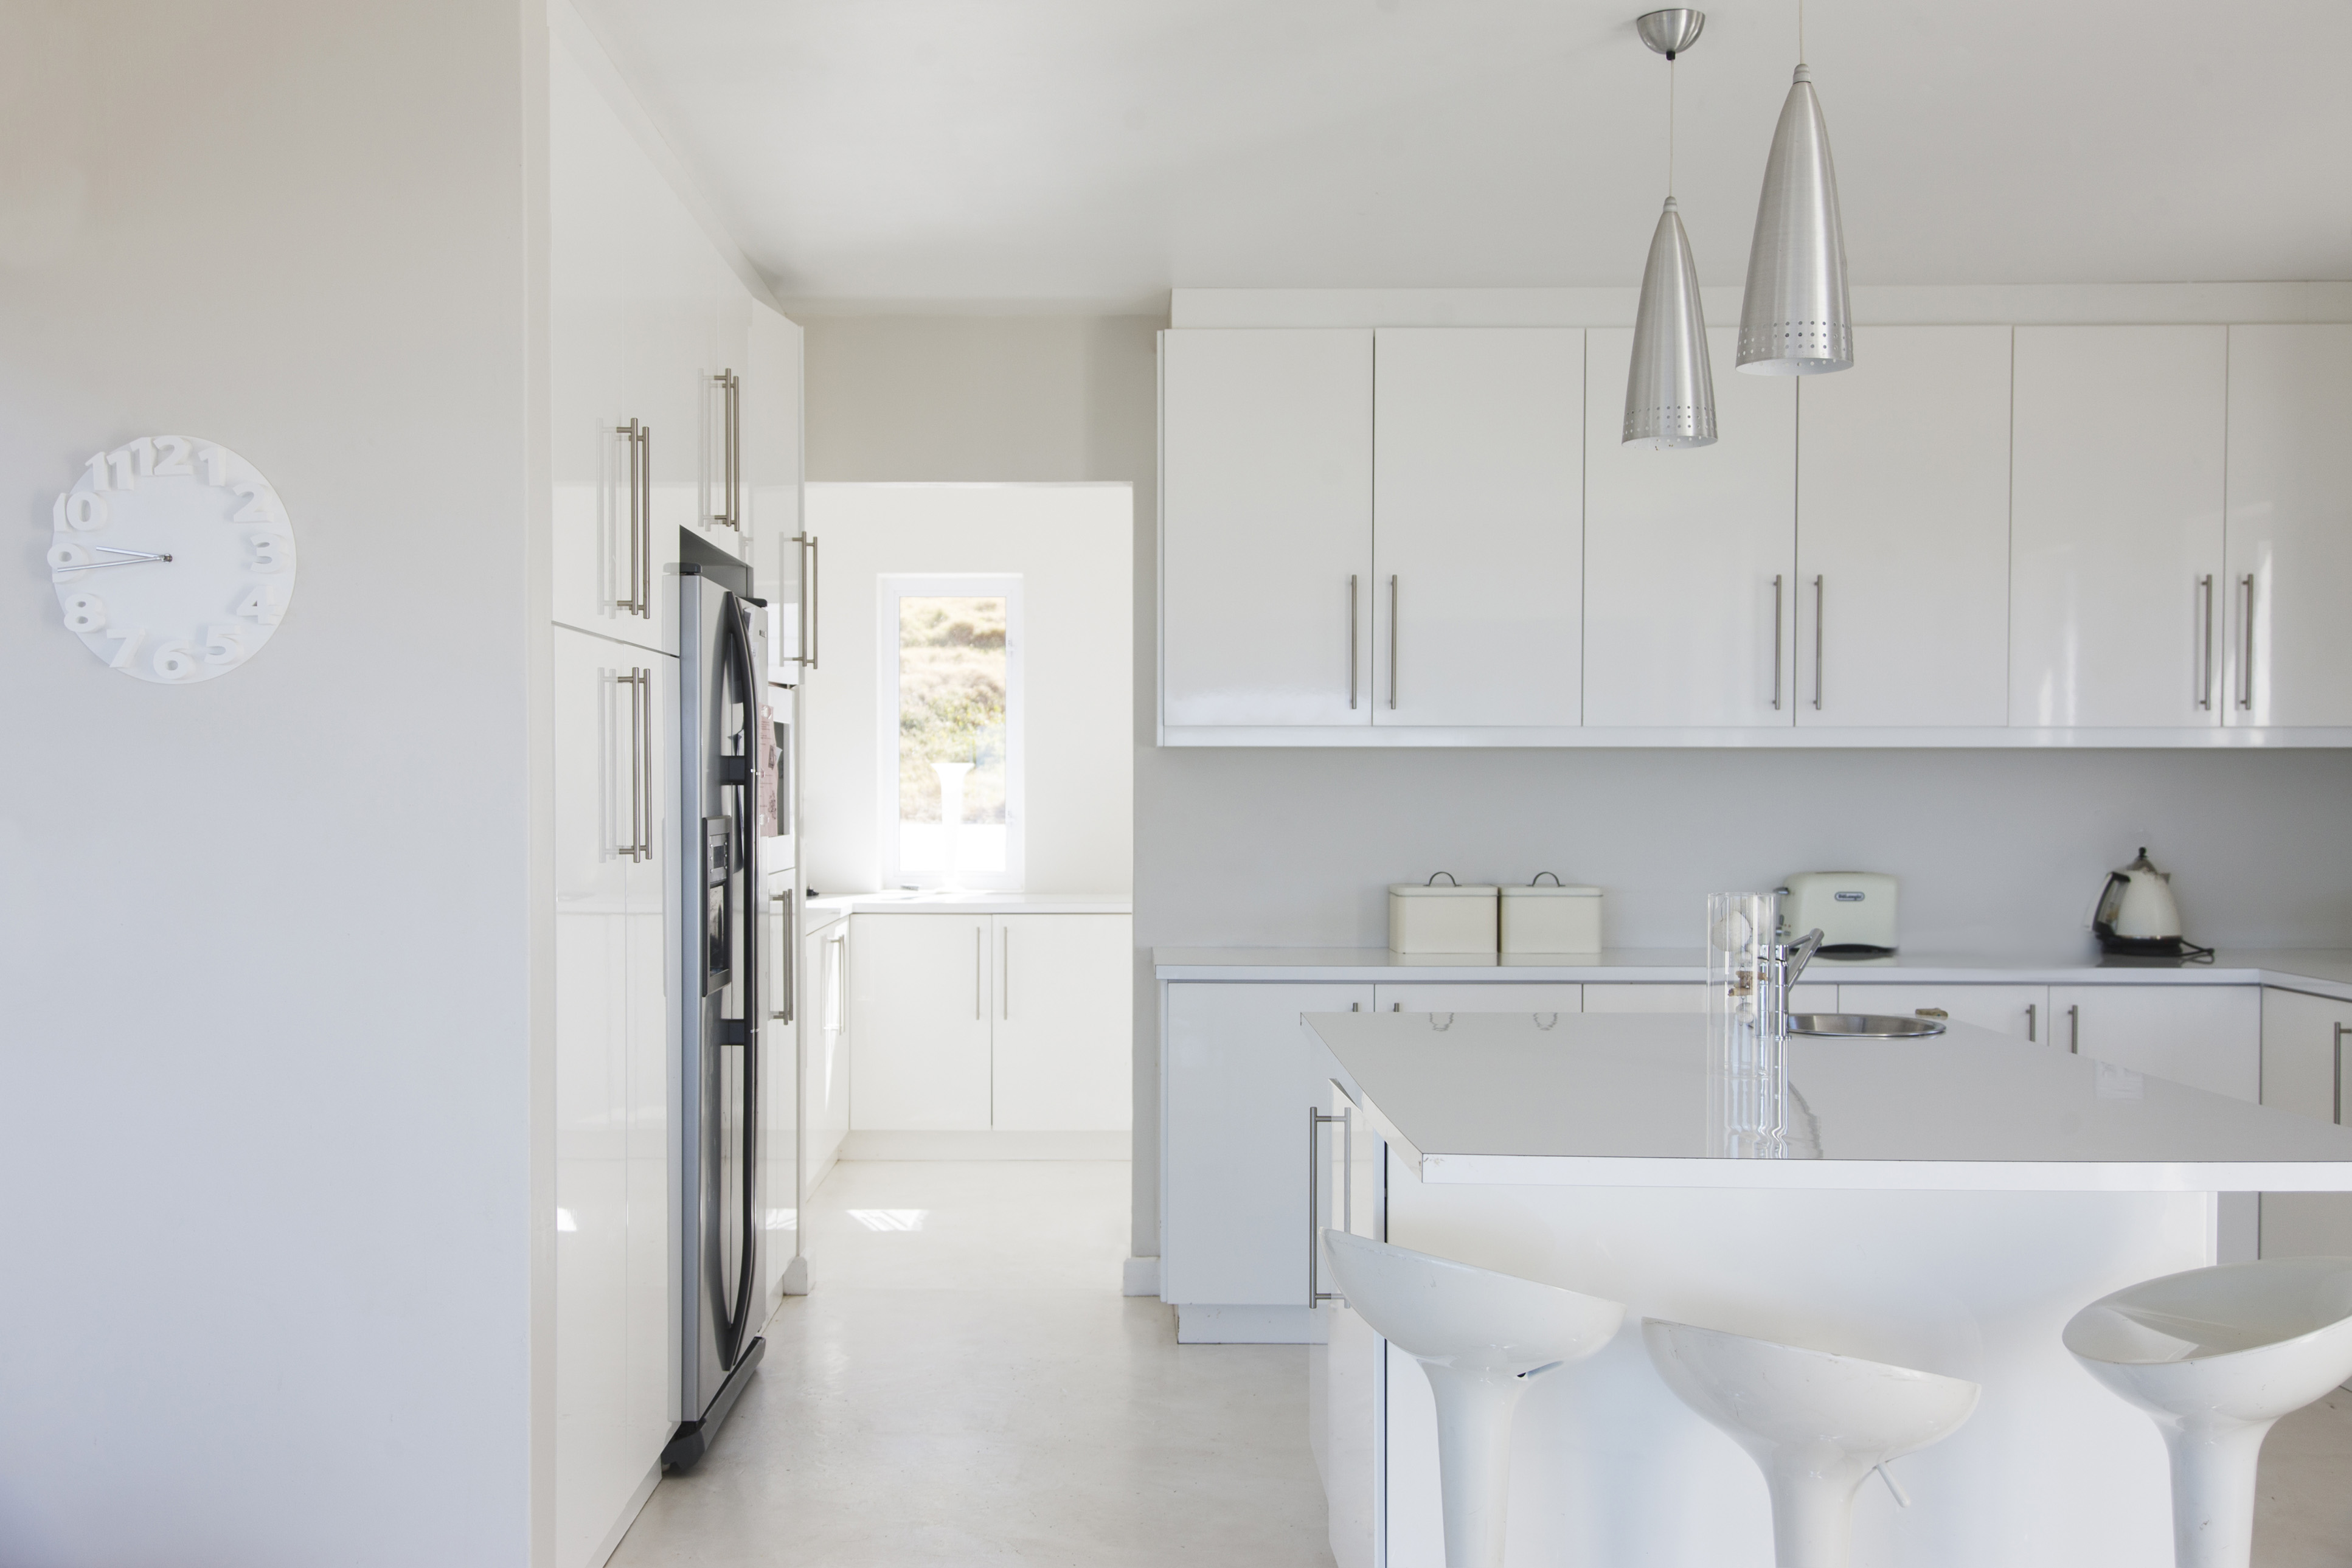 Benjamin Moore Oc 20 Is White Really White Hot When It Comes To Decorating Your Home